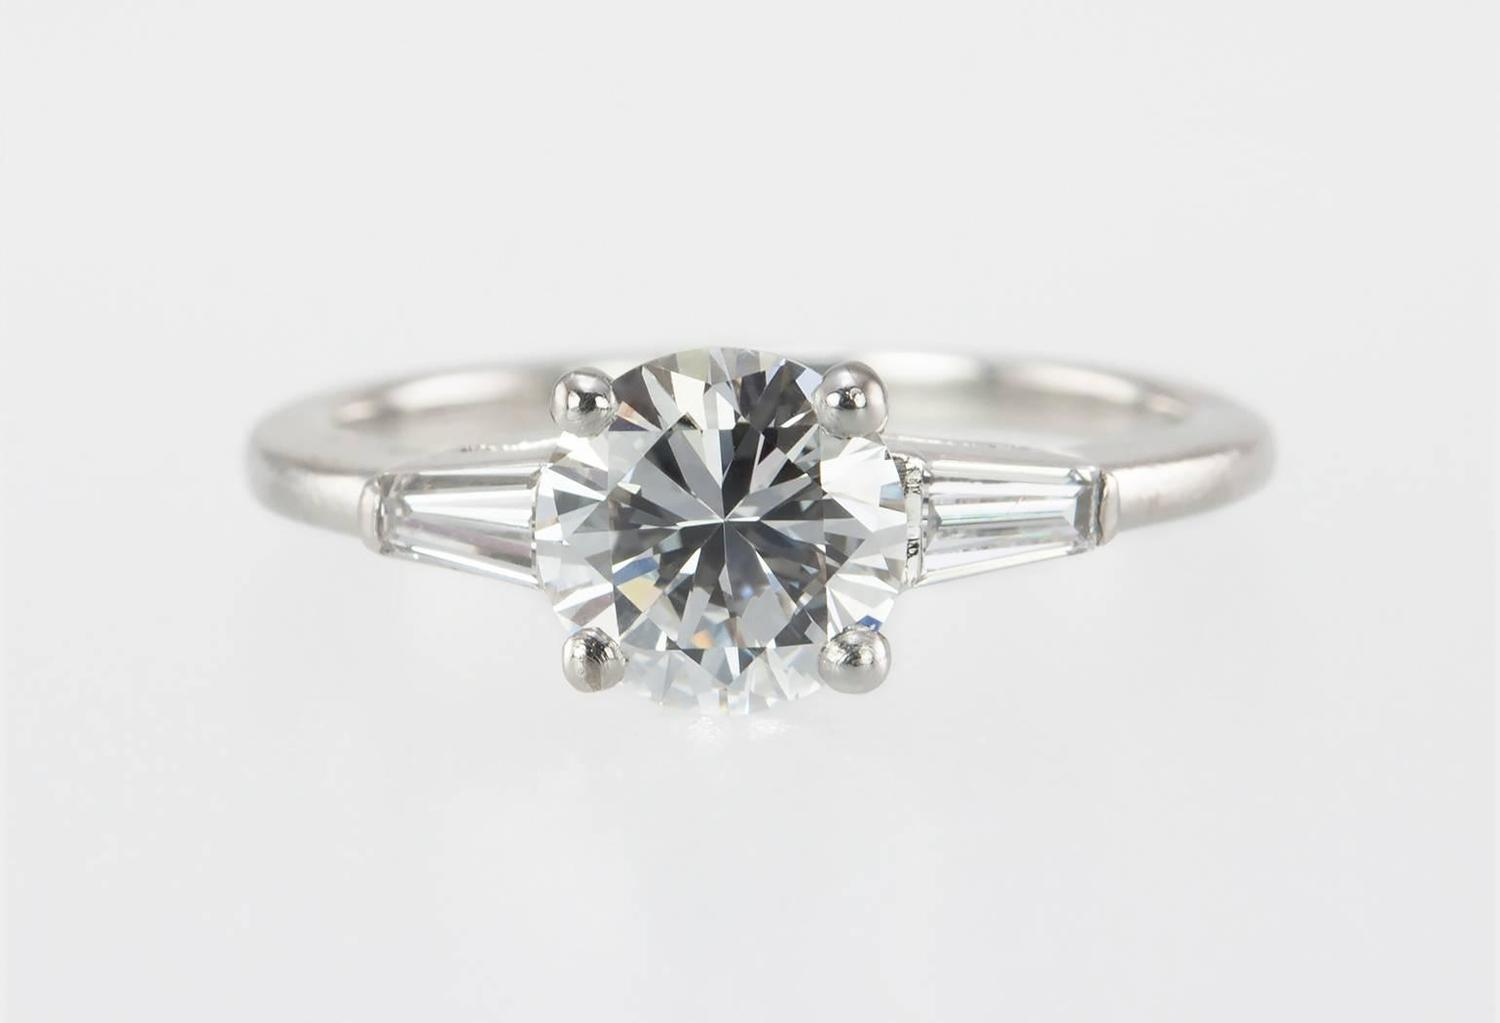 Cartier 1 Carat Engagement Rings Prices